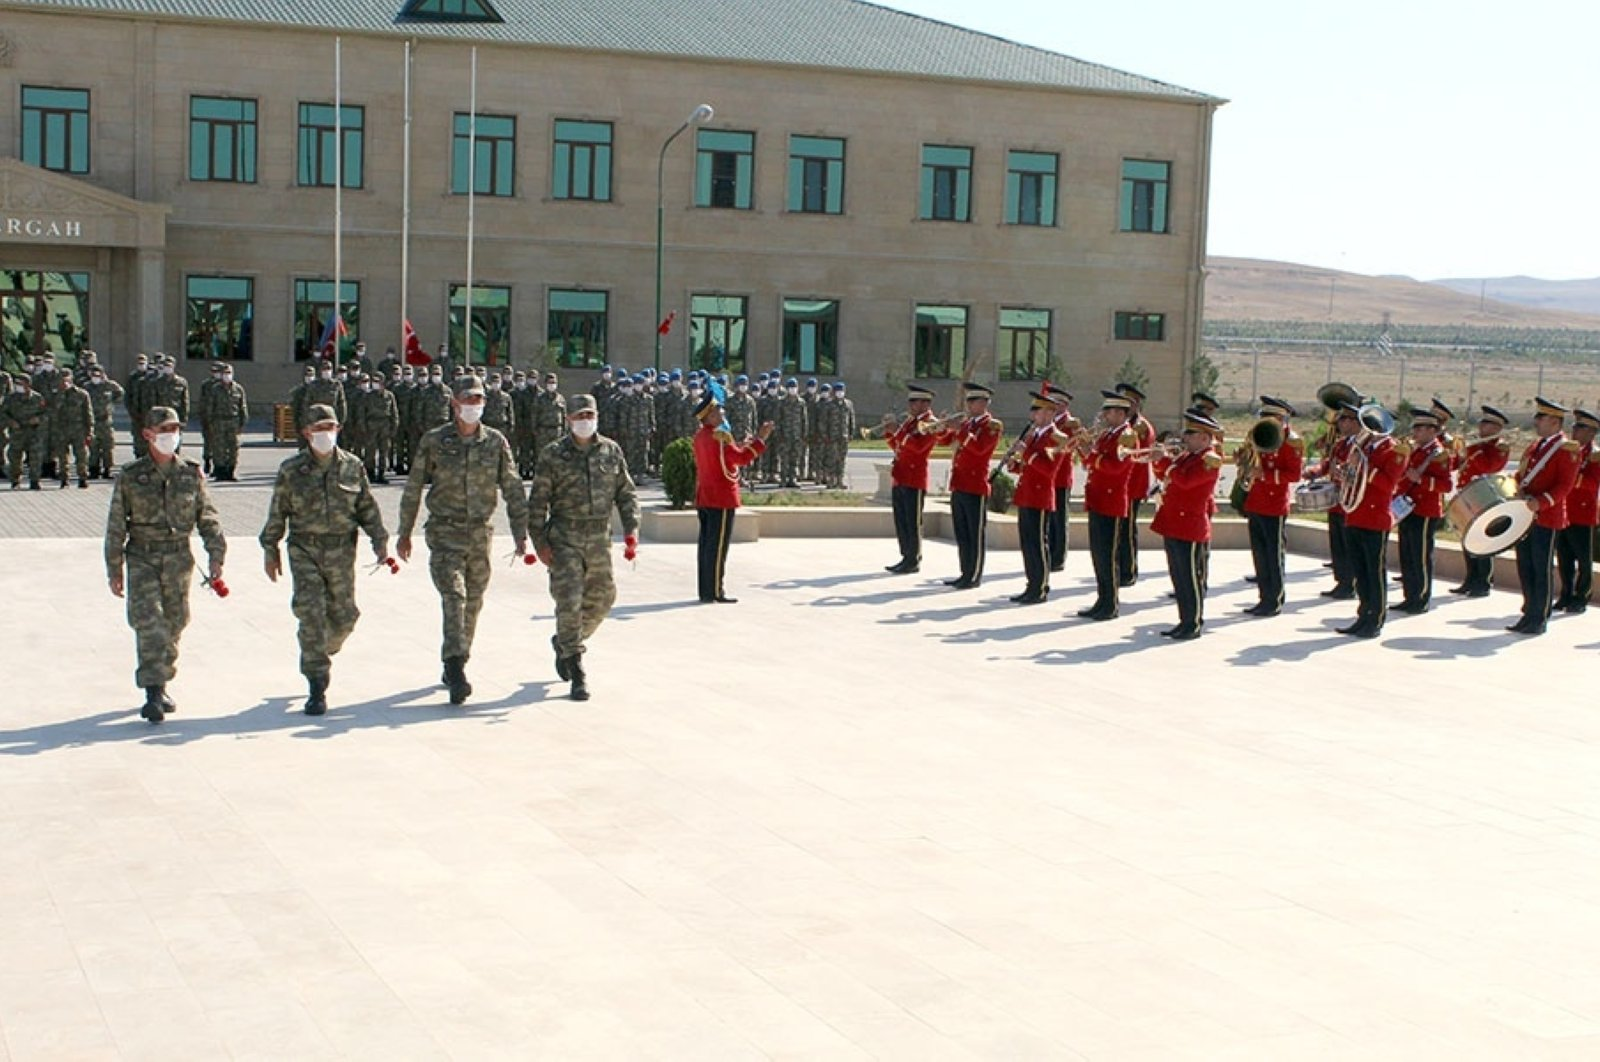 Azeri soldiers welcome Turkish soldiers, who landed in Baku for a joint military exercise, with a military ceremony, Baku, July 28, 2020. (AA Photo)